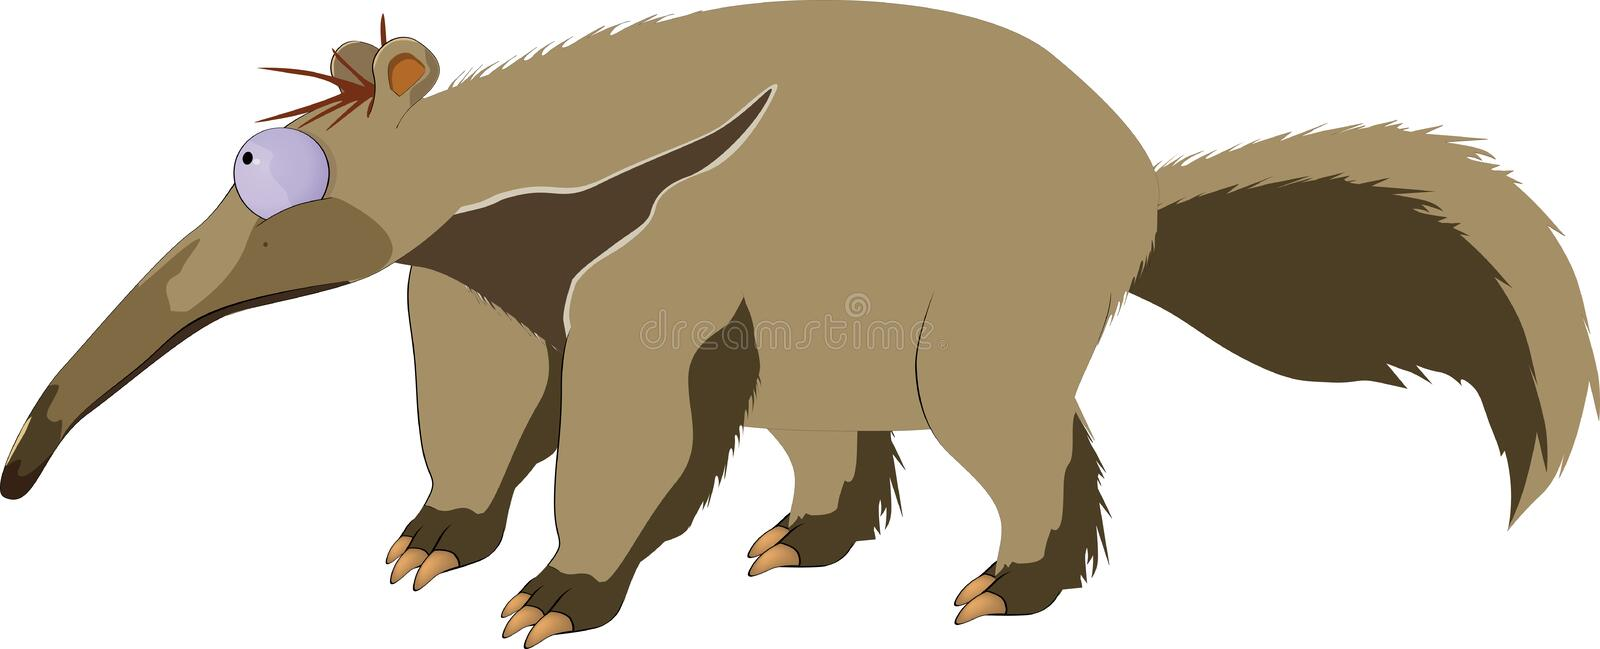 anteater royaltyfri illustrationer